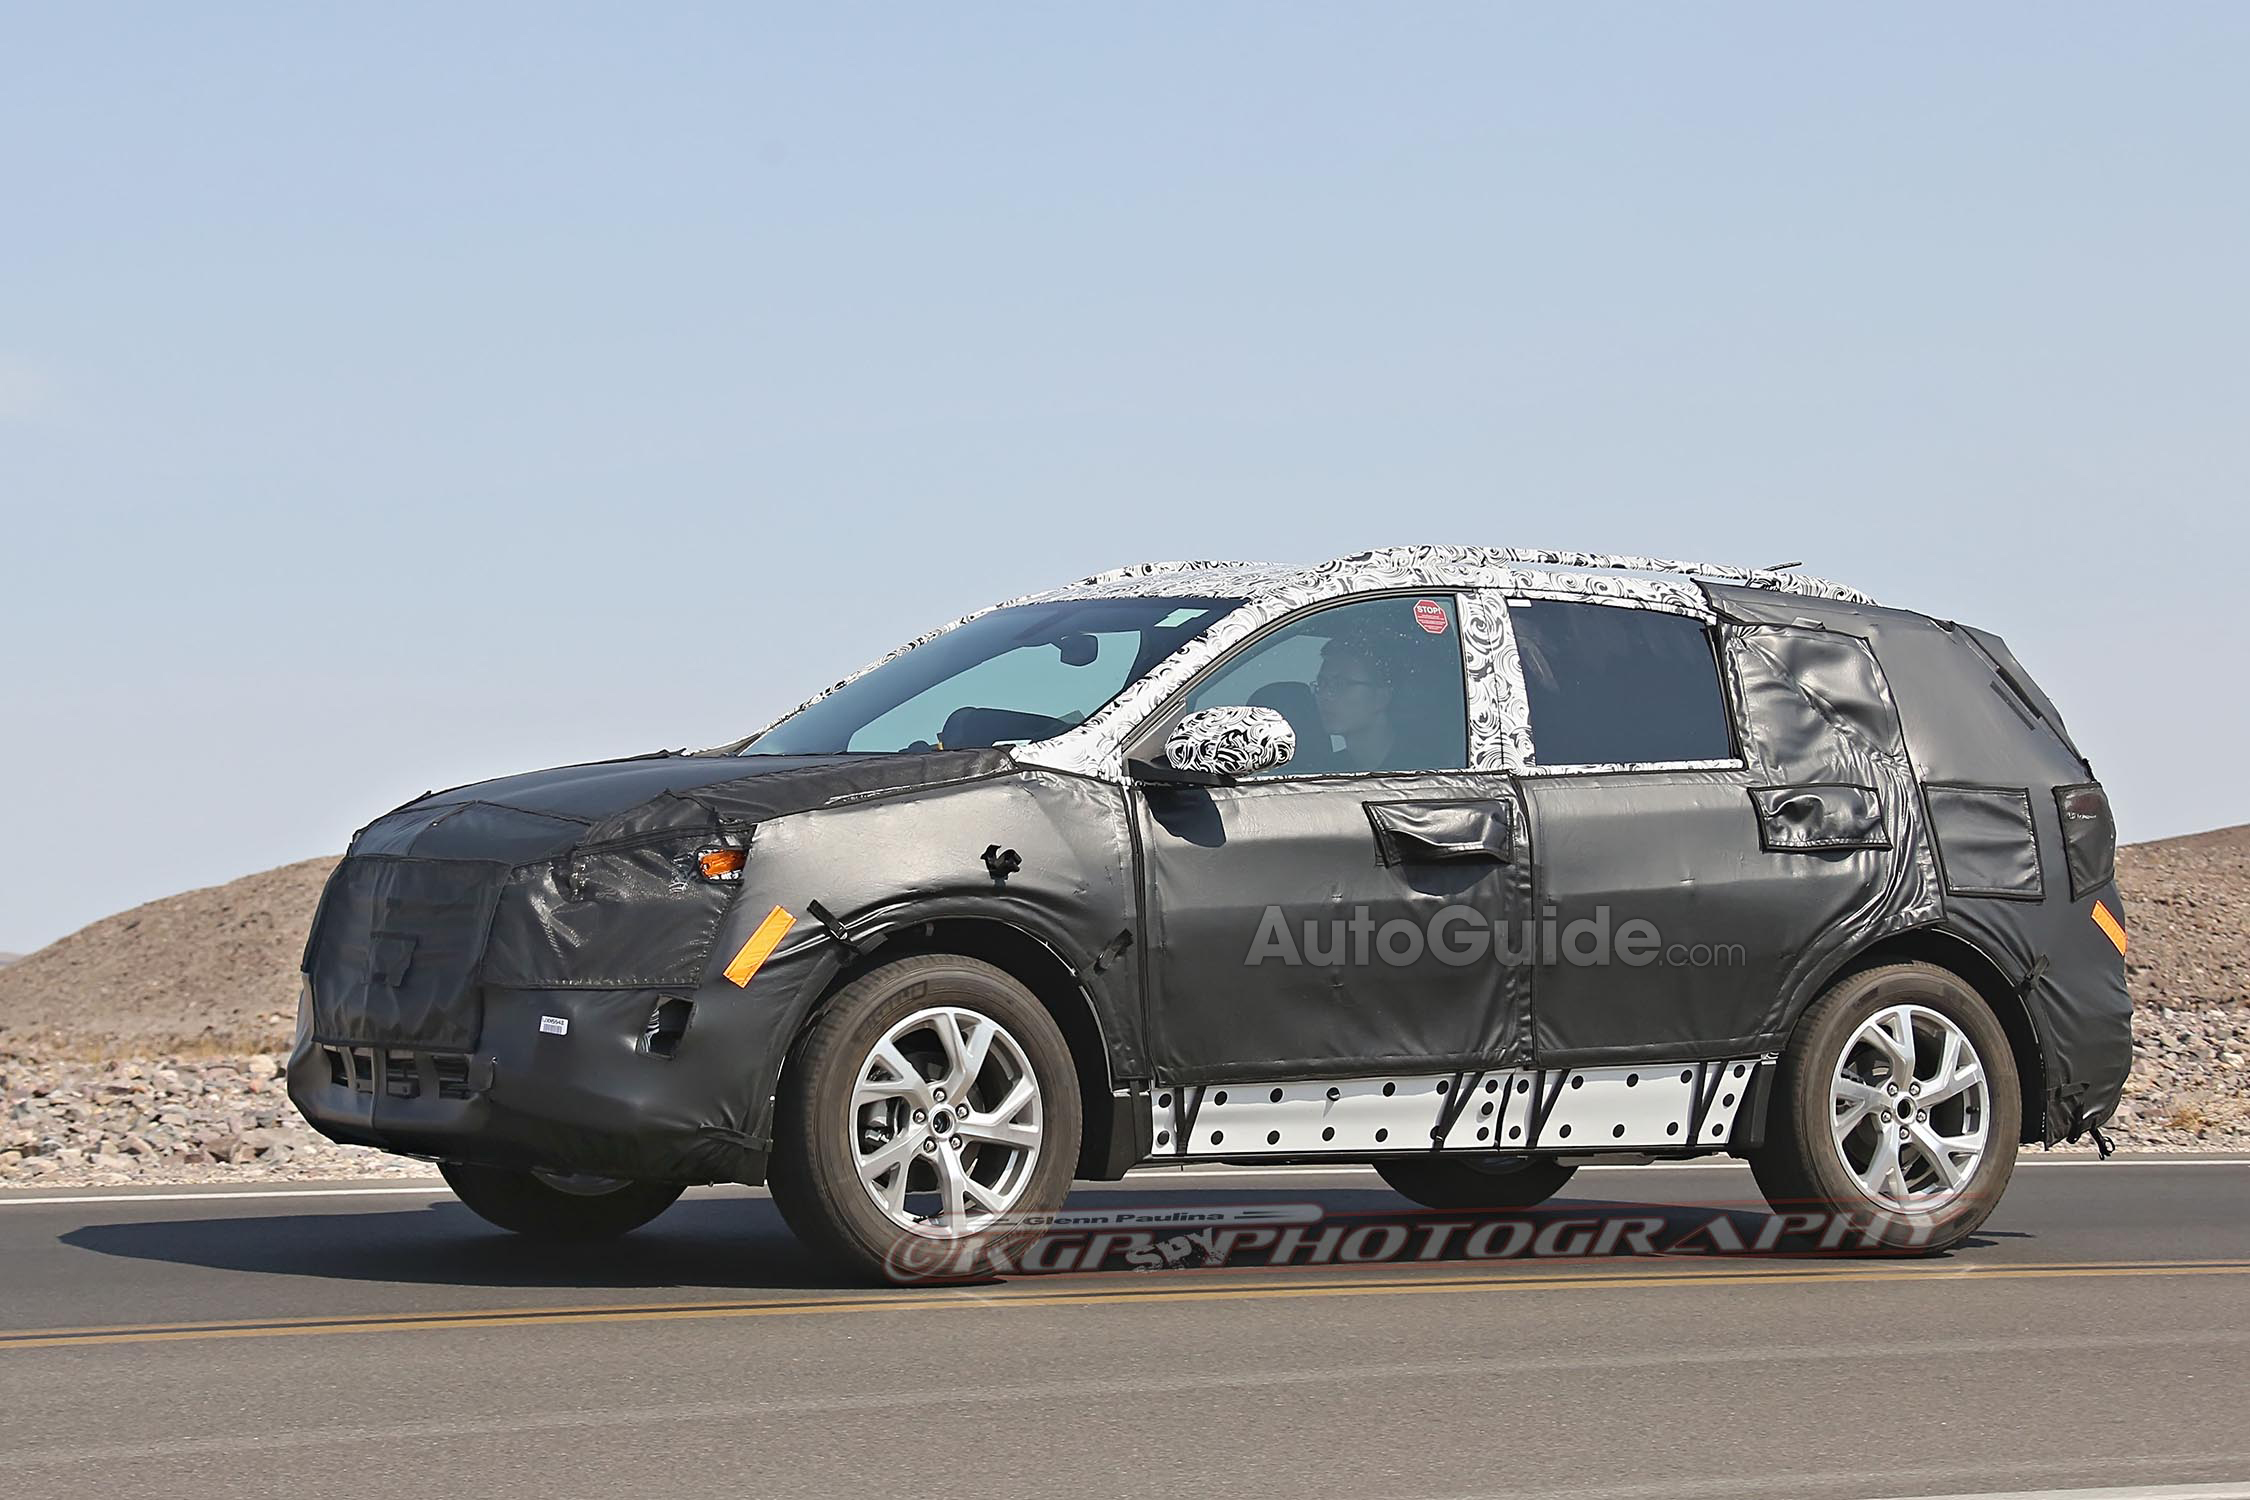 2017 Chevy Equinox Spied for the First Time » AutoGuide.com News